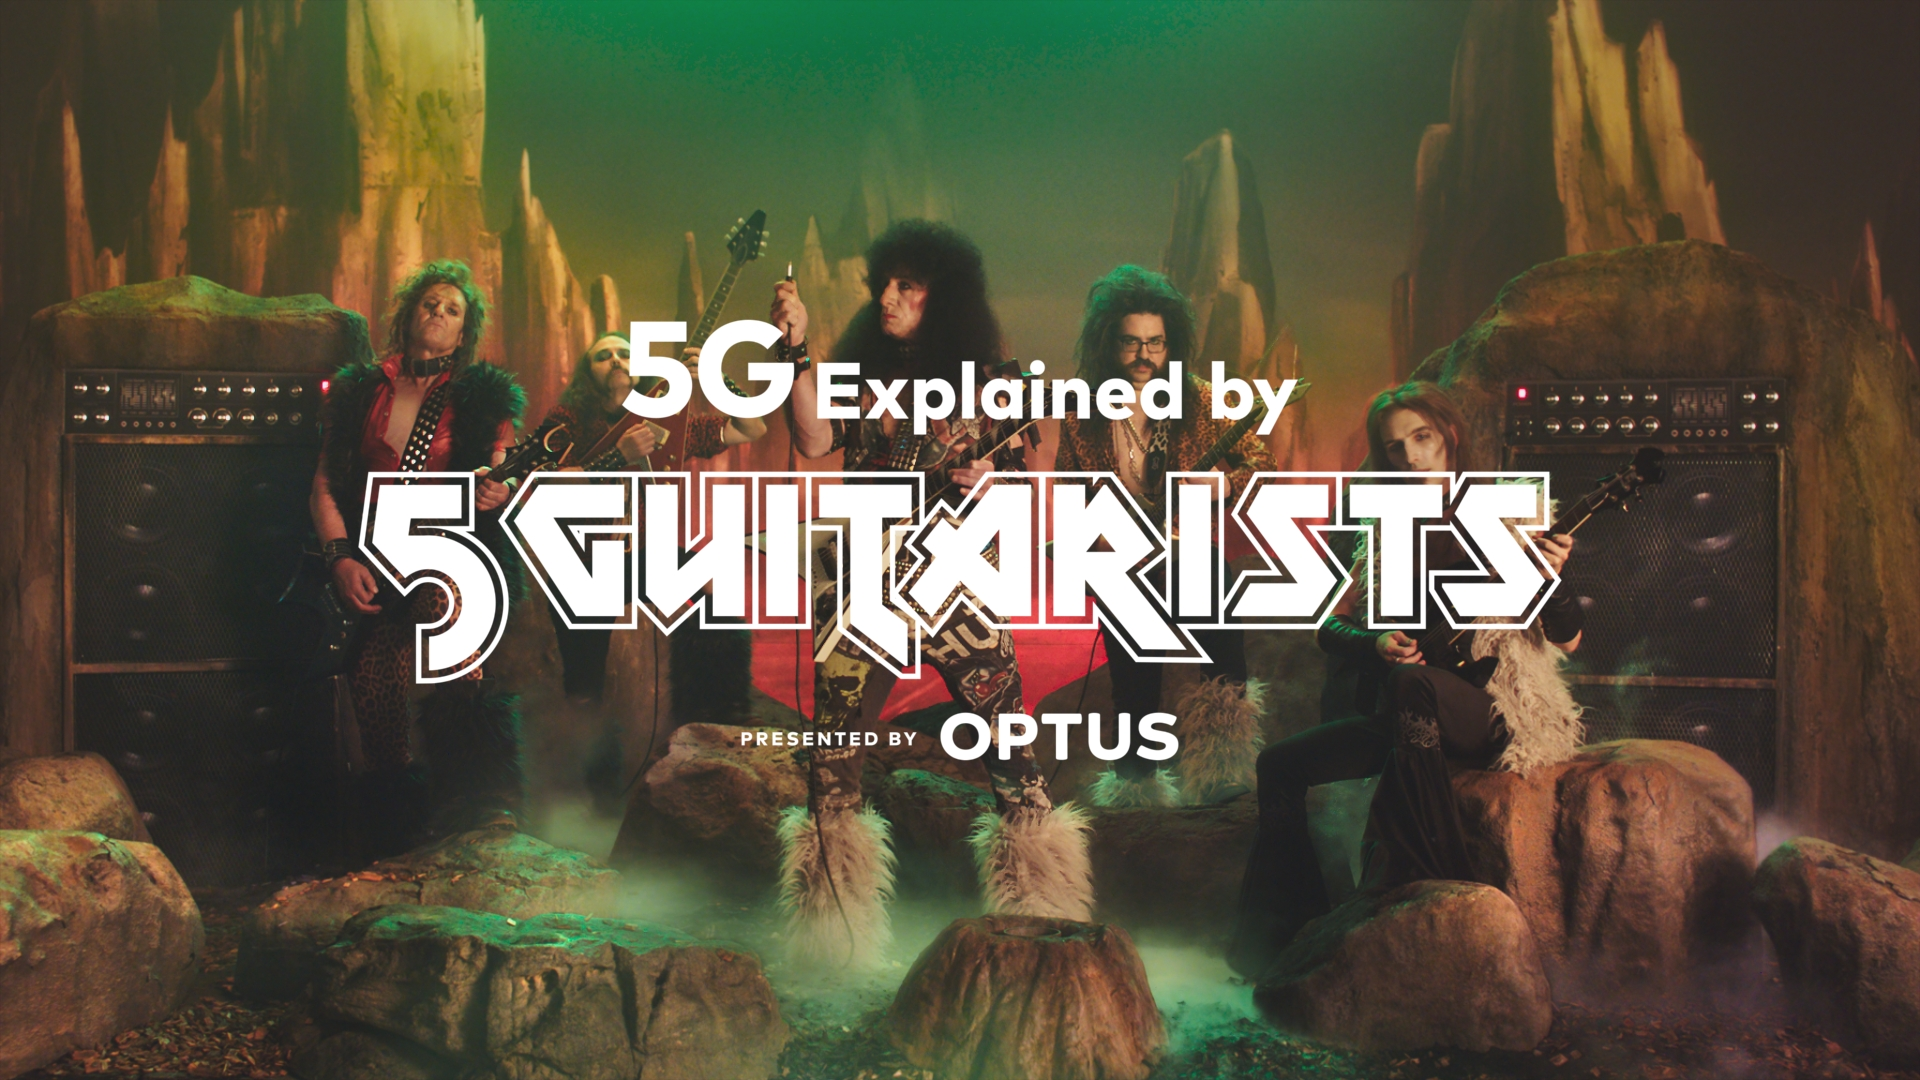 Optus unveils new 5G Network campaign via Bear Meets Eagle ~ shot by director Andreas Nilsson